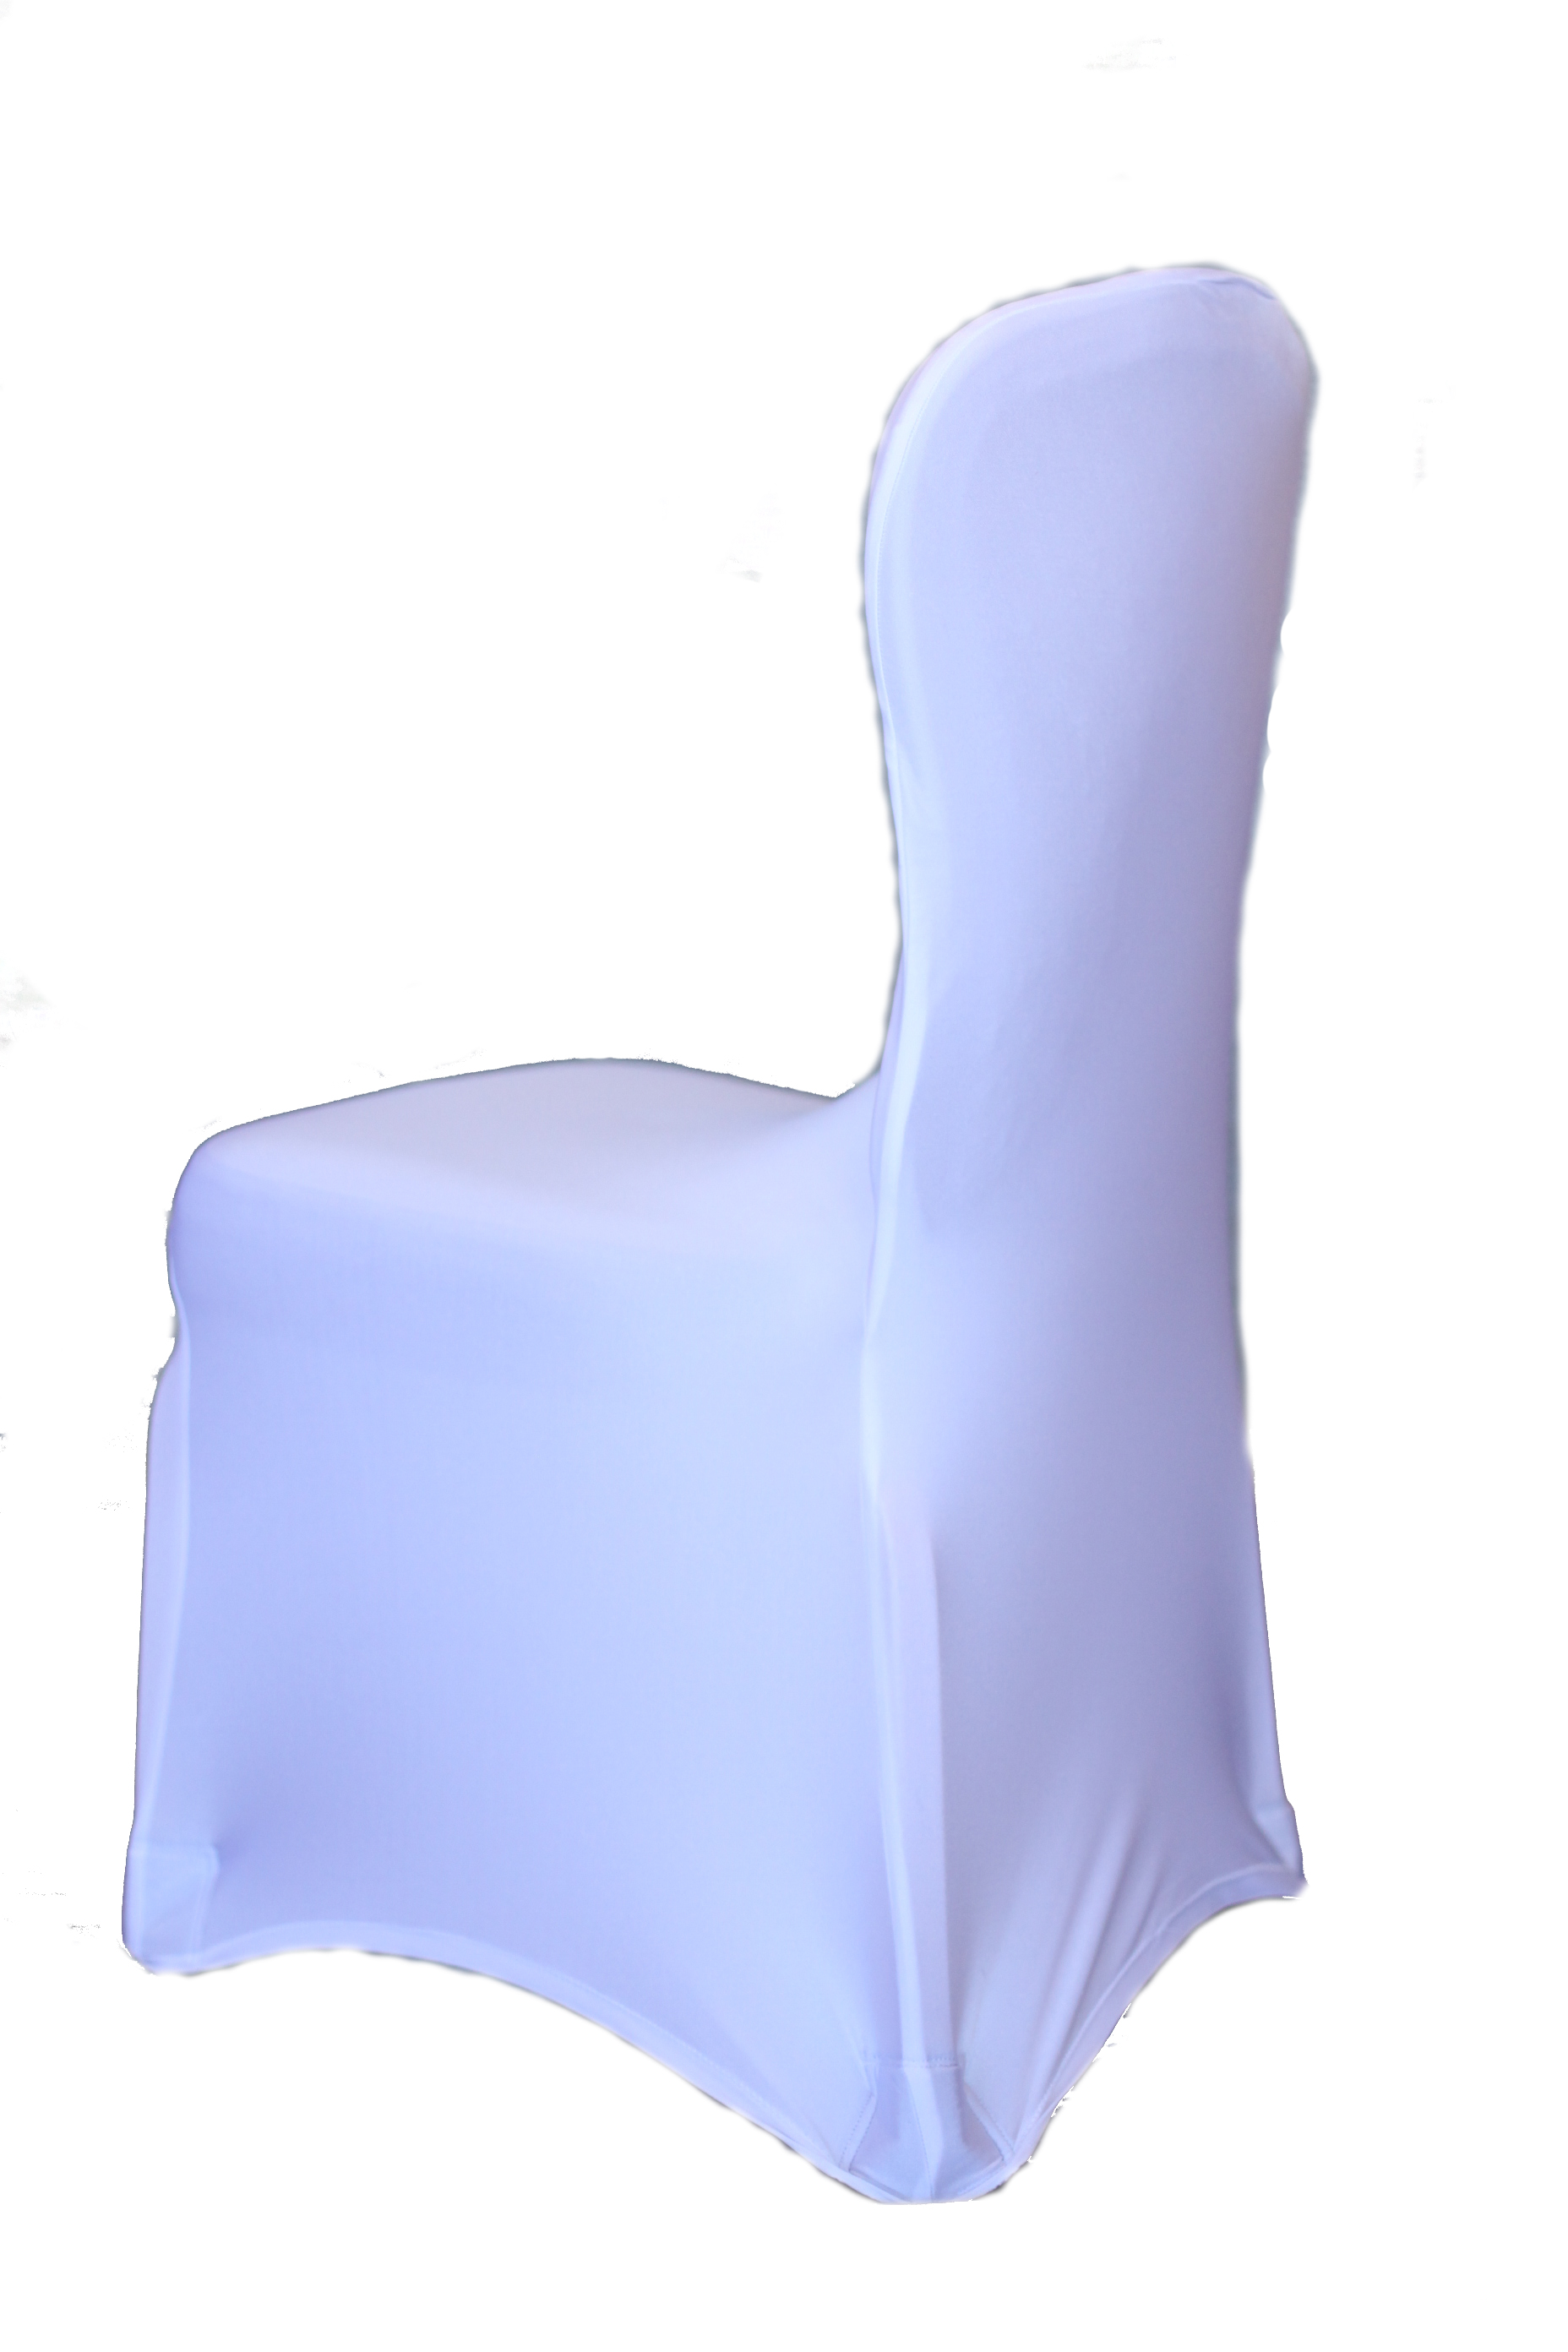 hot pink spandex chair covers swivel no wheels uk white the finishing touch